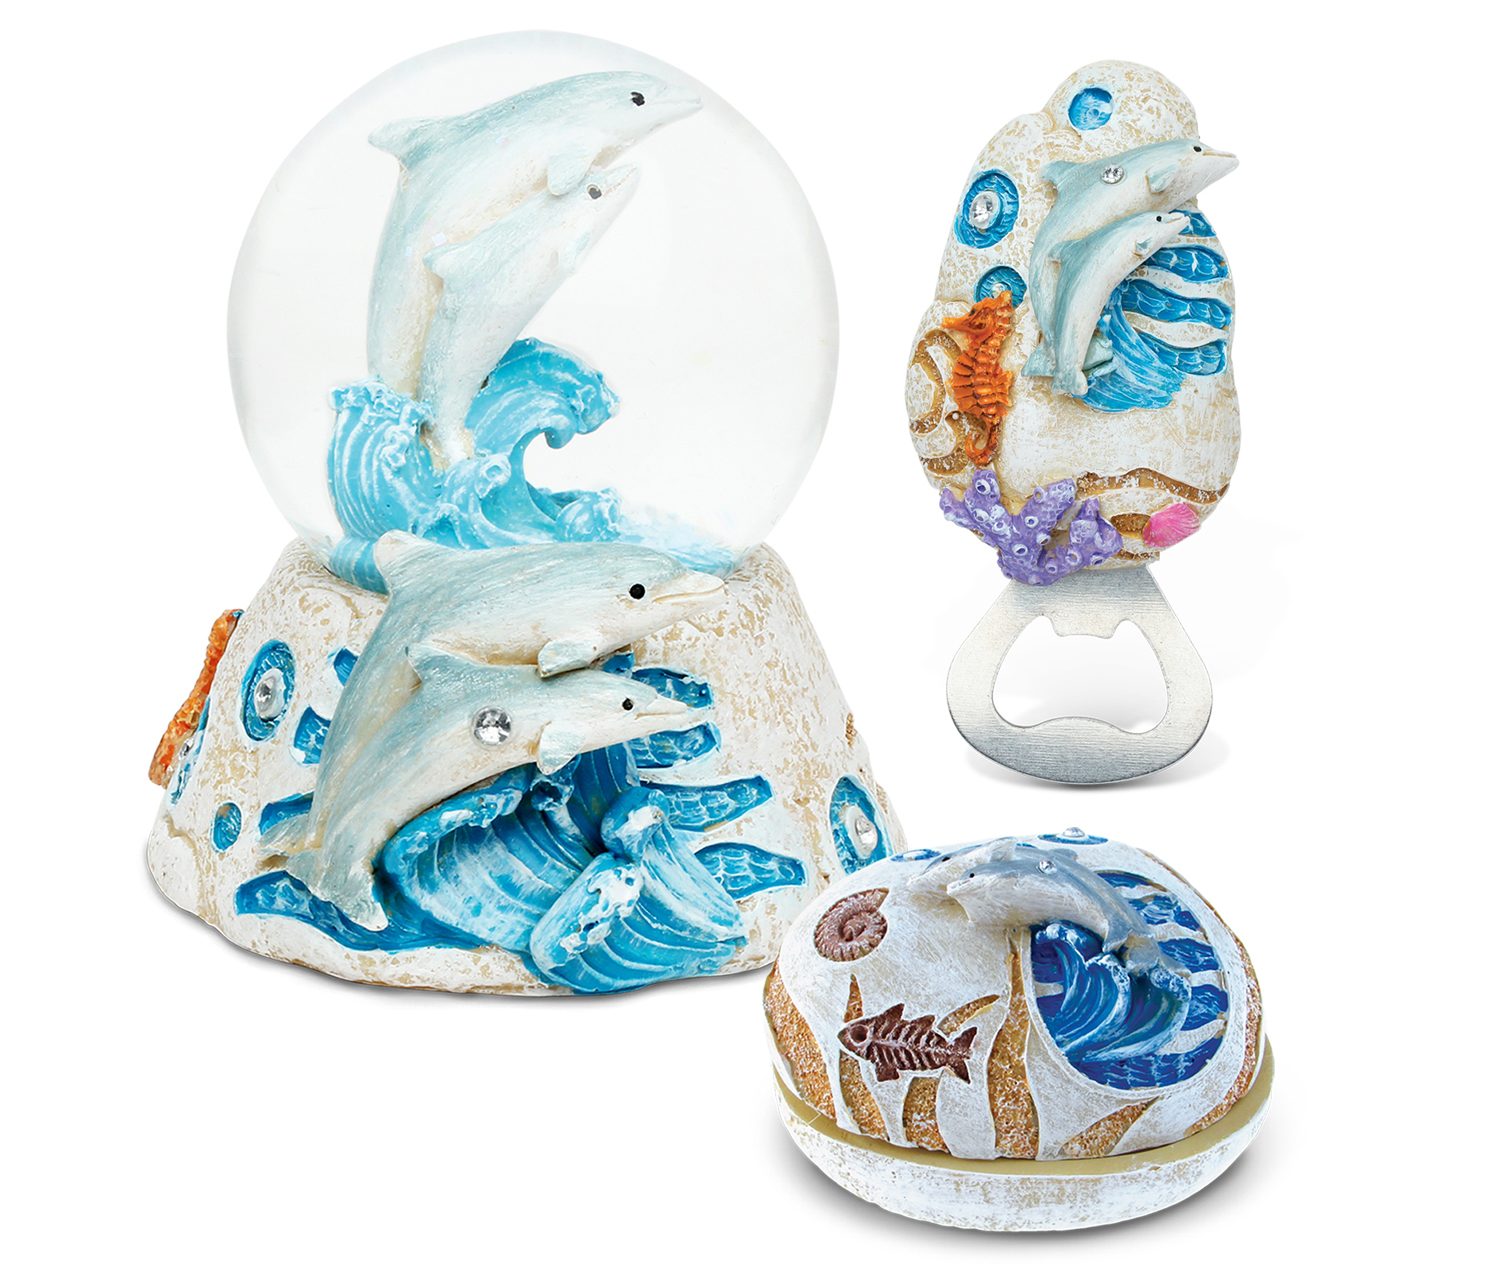 Puzzled Home Decor Value Pack Dolphin Resin Stone collection - Set of 3 (Value Home Dcor Pack), Multi